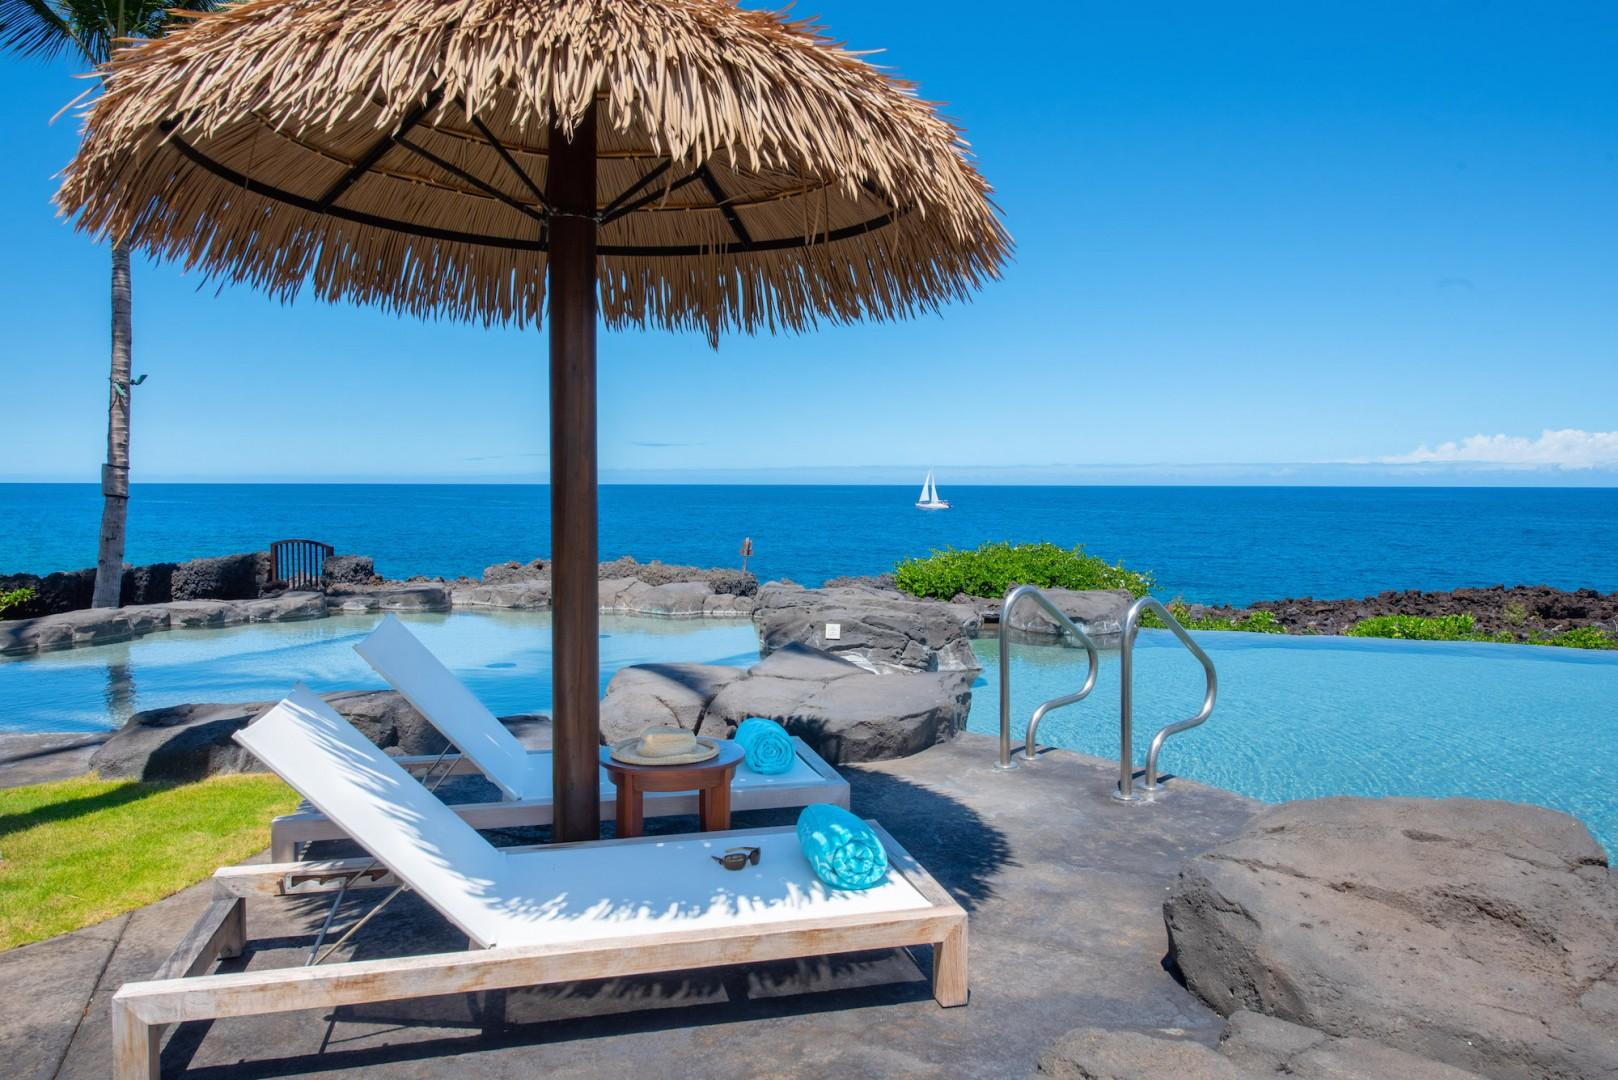 Relax and Retreat at The Grotto Amenity Center